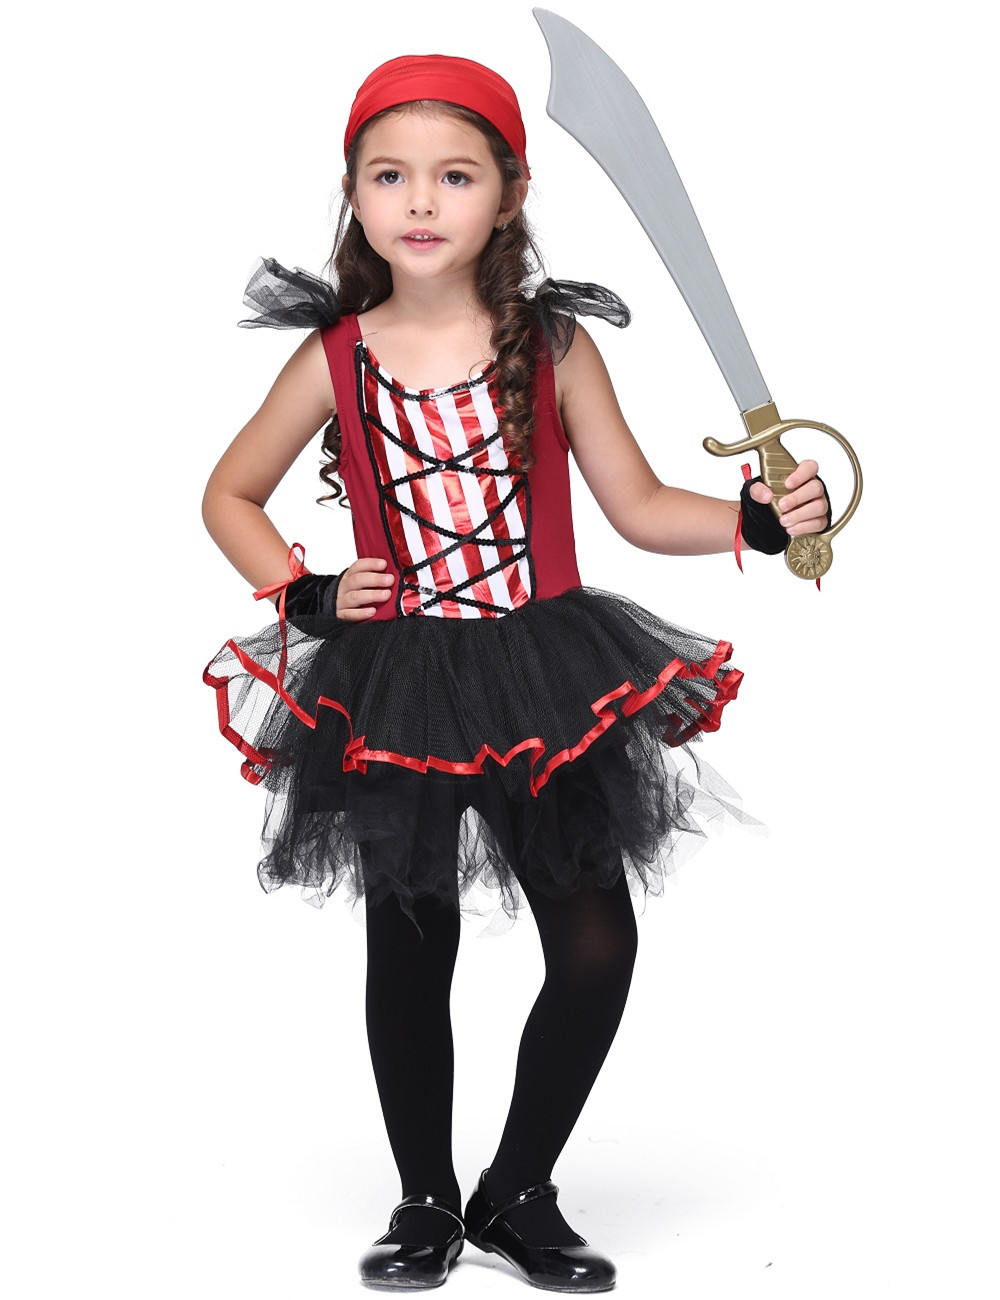 Pirate Stage Costume Halloween Costume for Kids Girl Performance Dancewear Dress Toddler Party Cosplay Stage Skirt